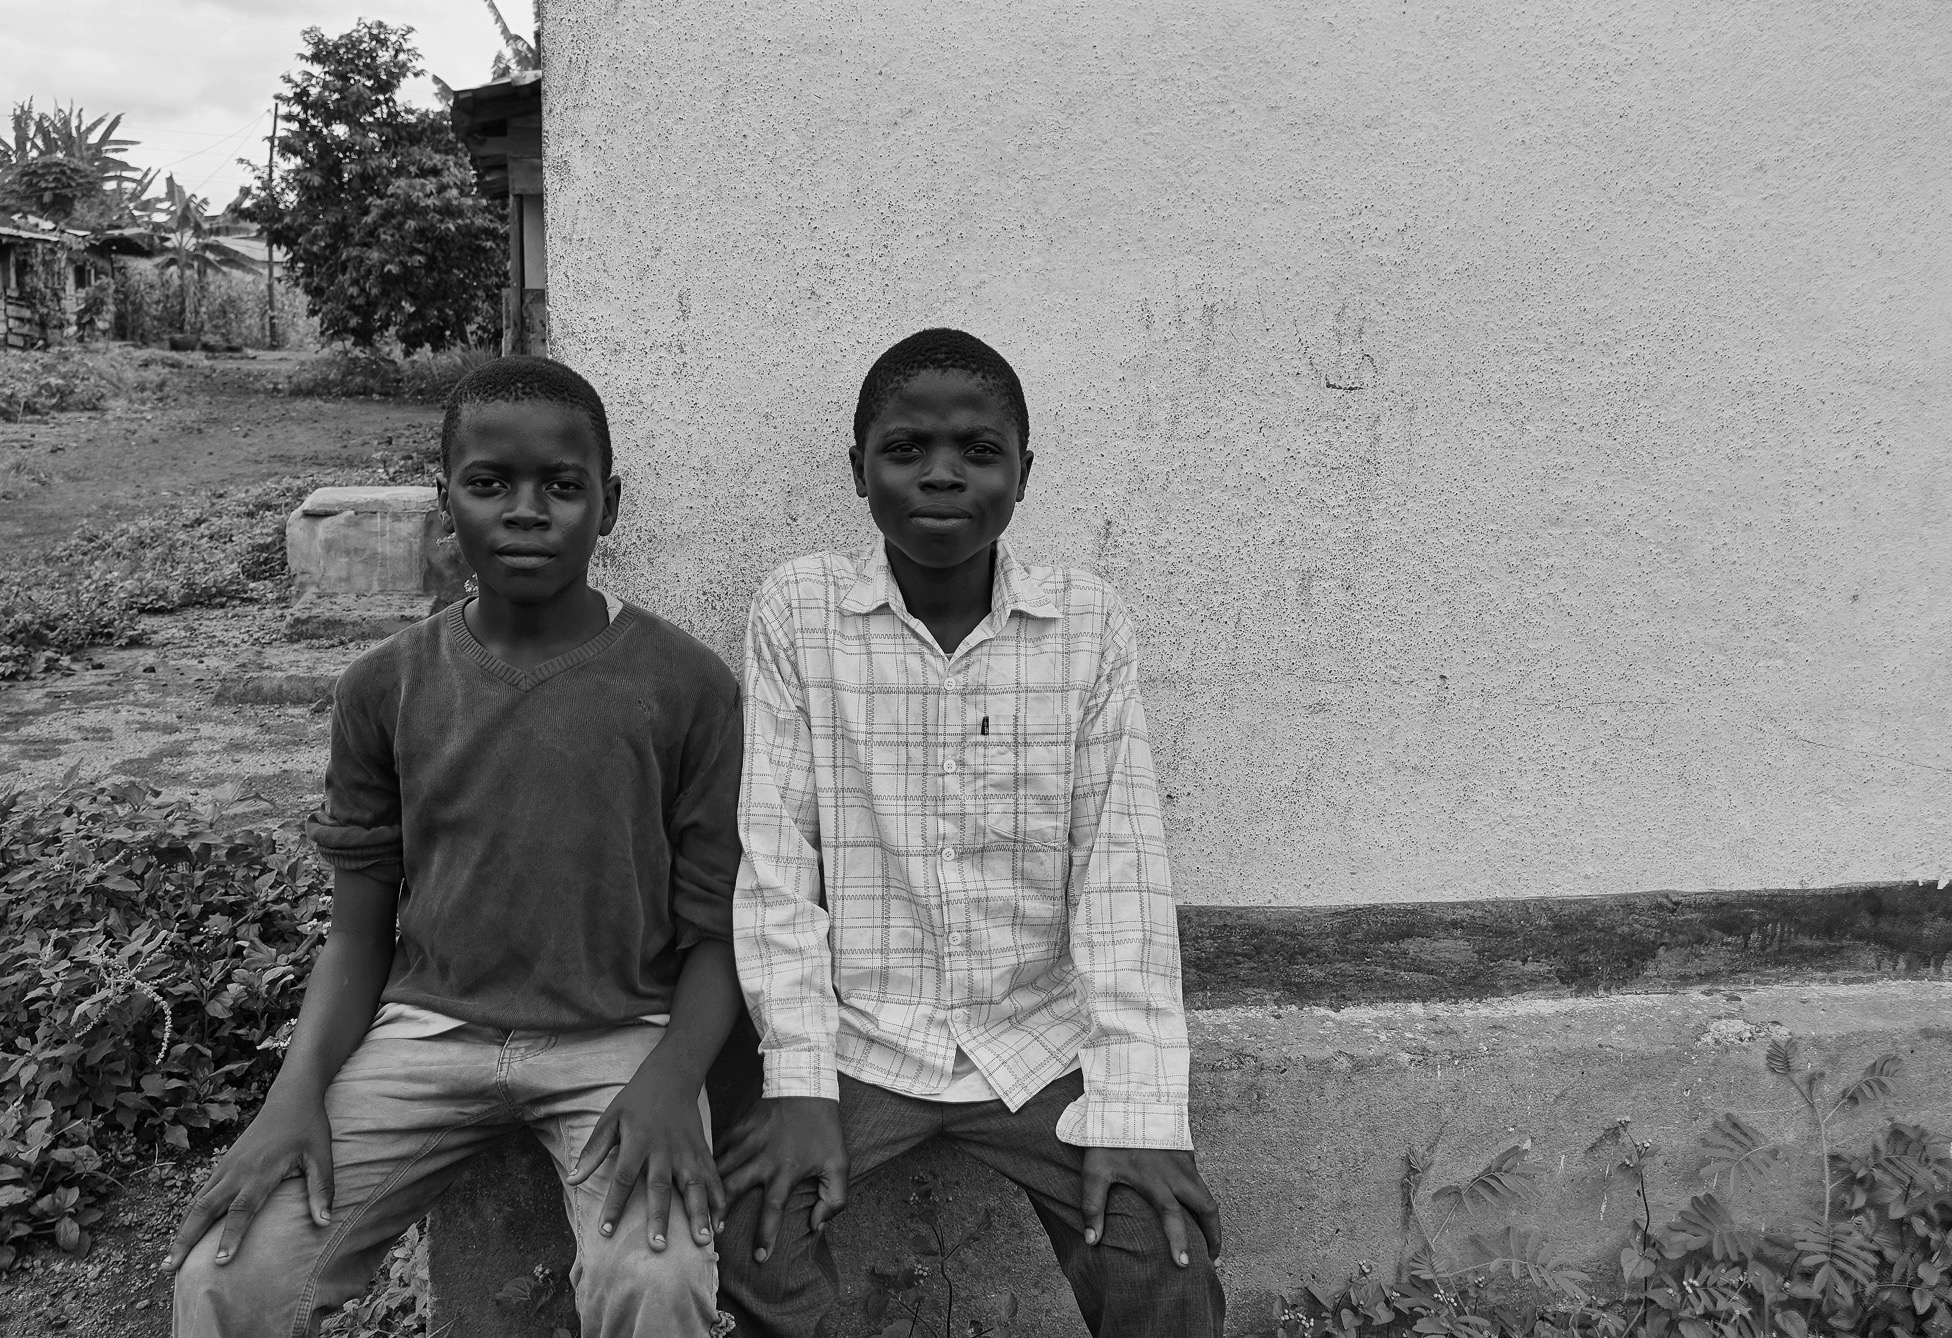 Two boys sit on a ledge in front of a white wall looking at the camera